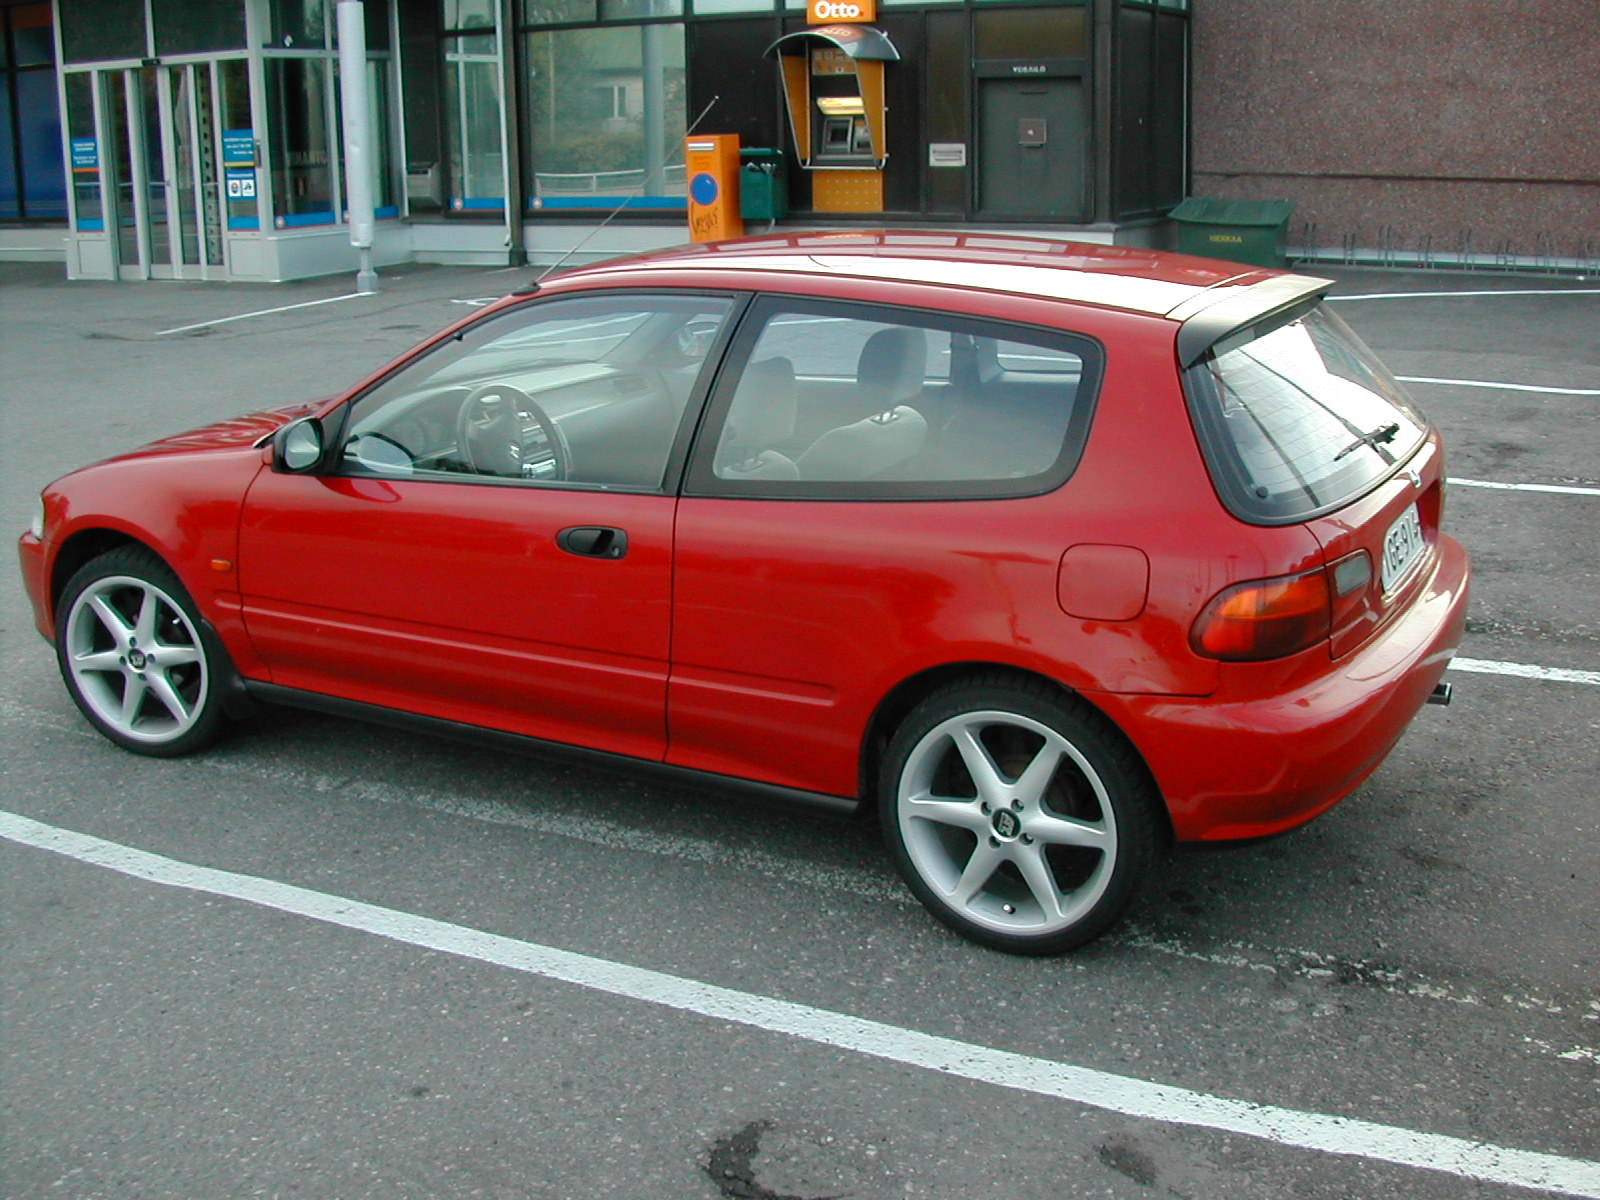 1993 honda civic hatchback - photo #2